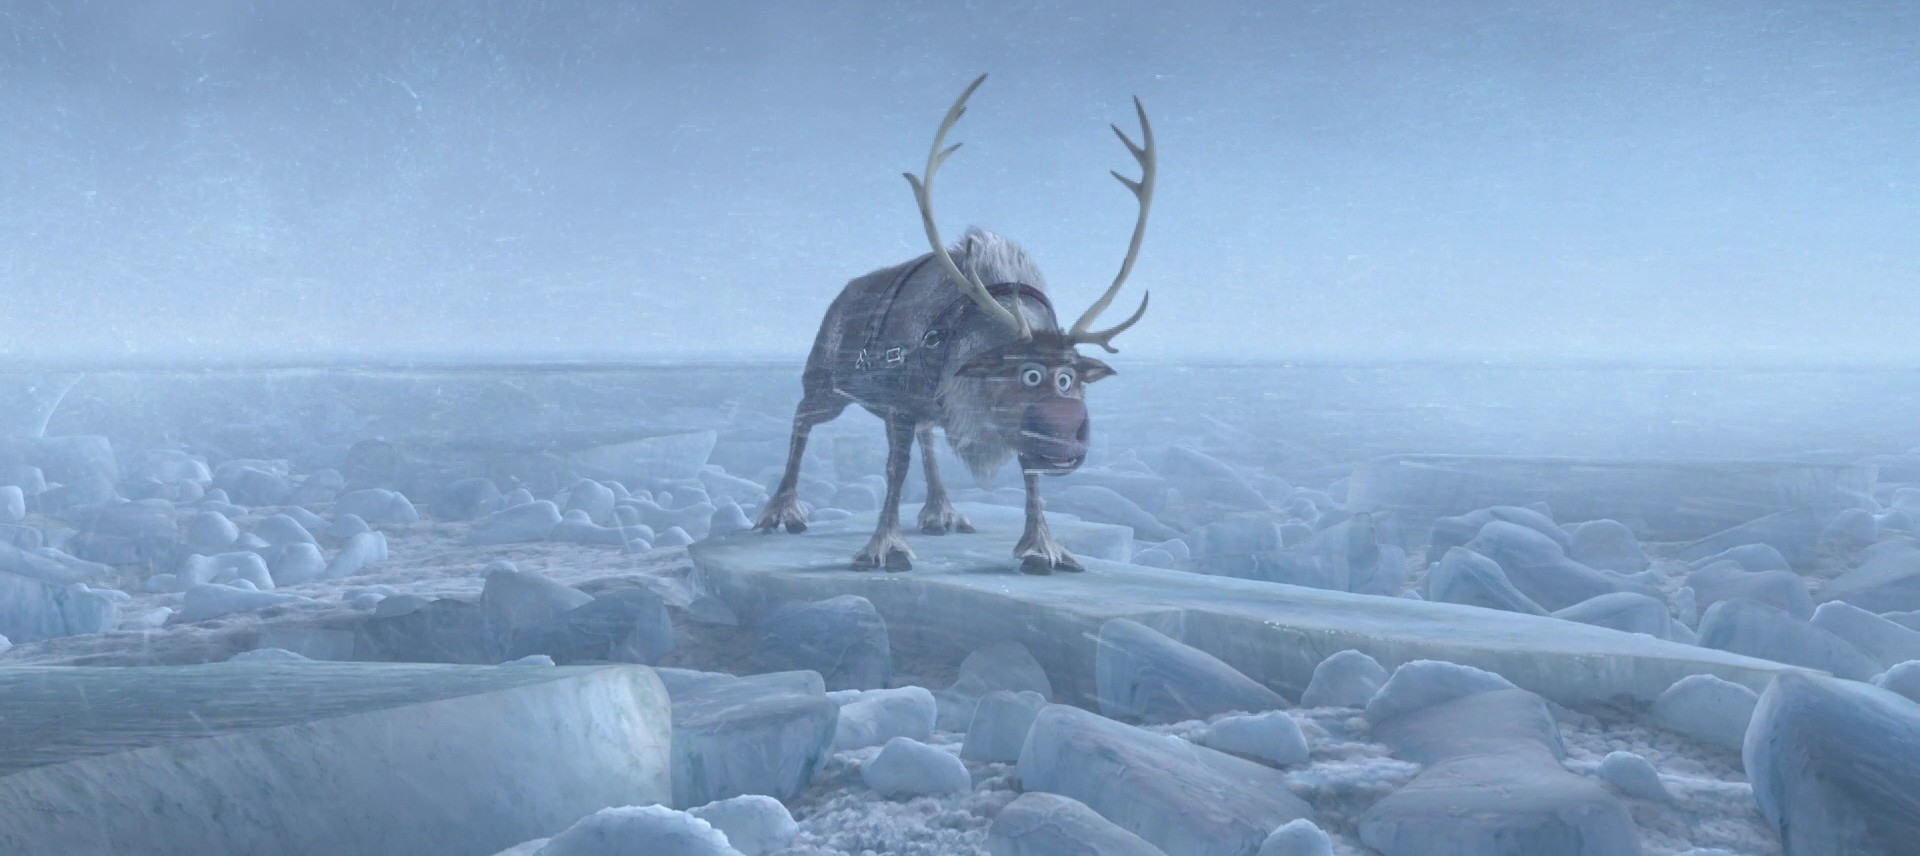 Review Frozen On Broadway Soars Early But Profoundly Disappoints When Sven The Reindeer Doesn T Get The Solo He Goddamn Deserves By Jacob Osborne Medium